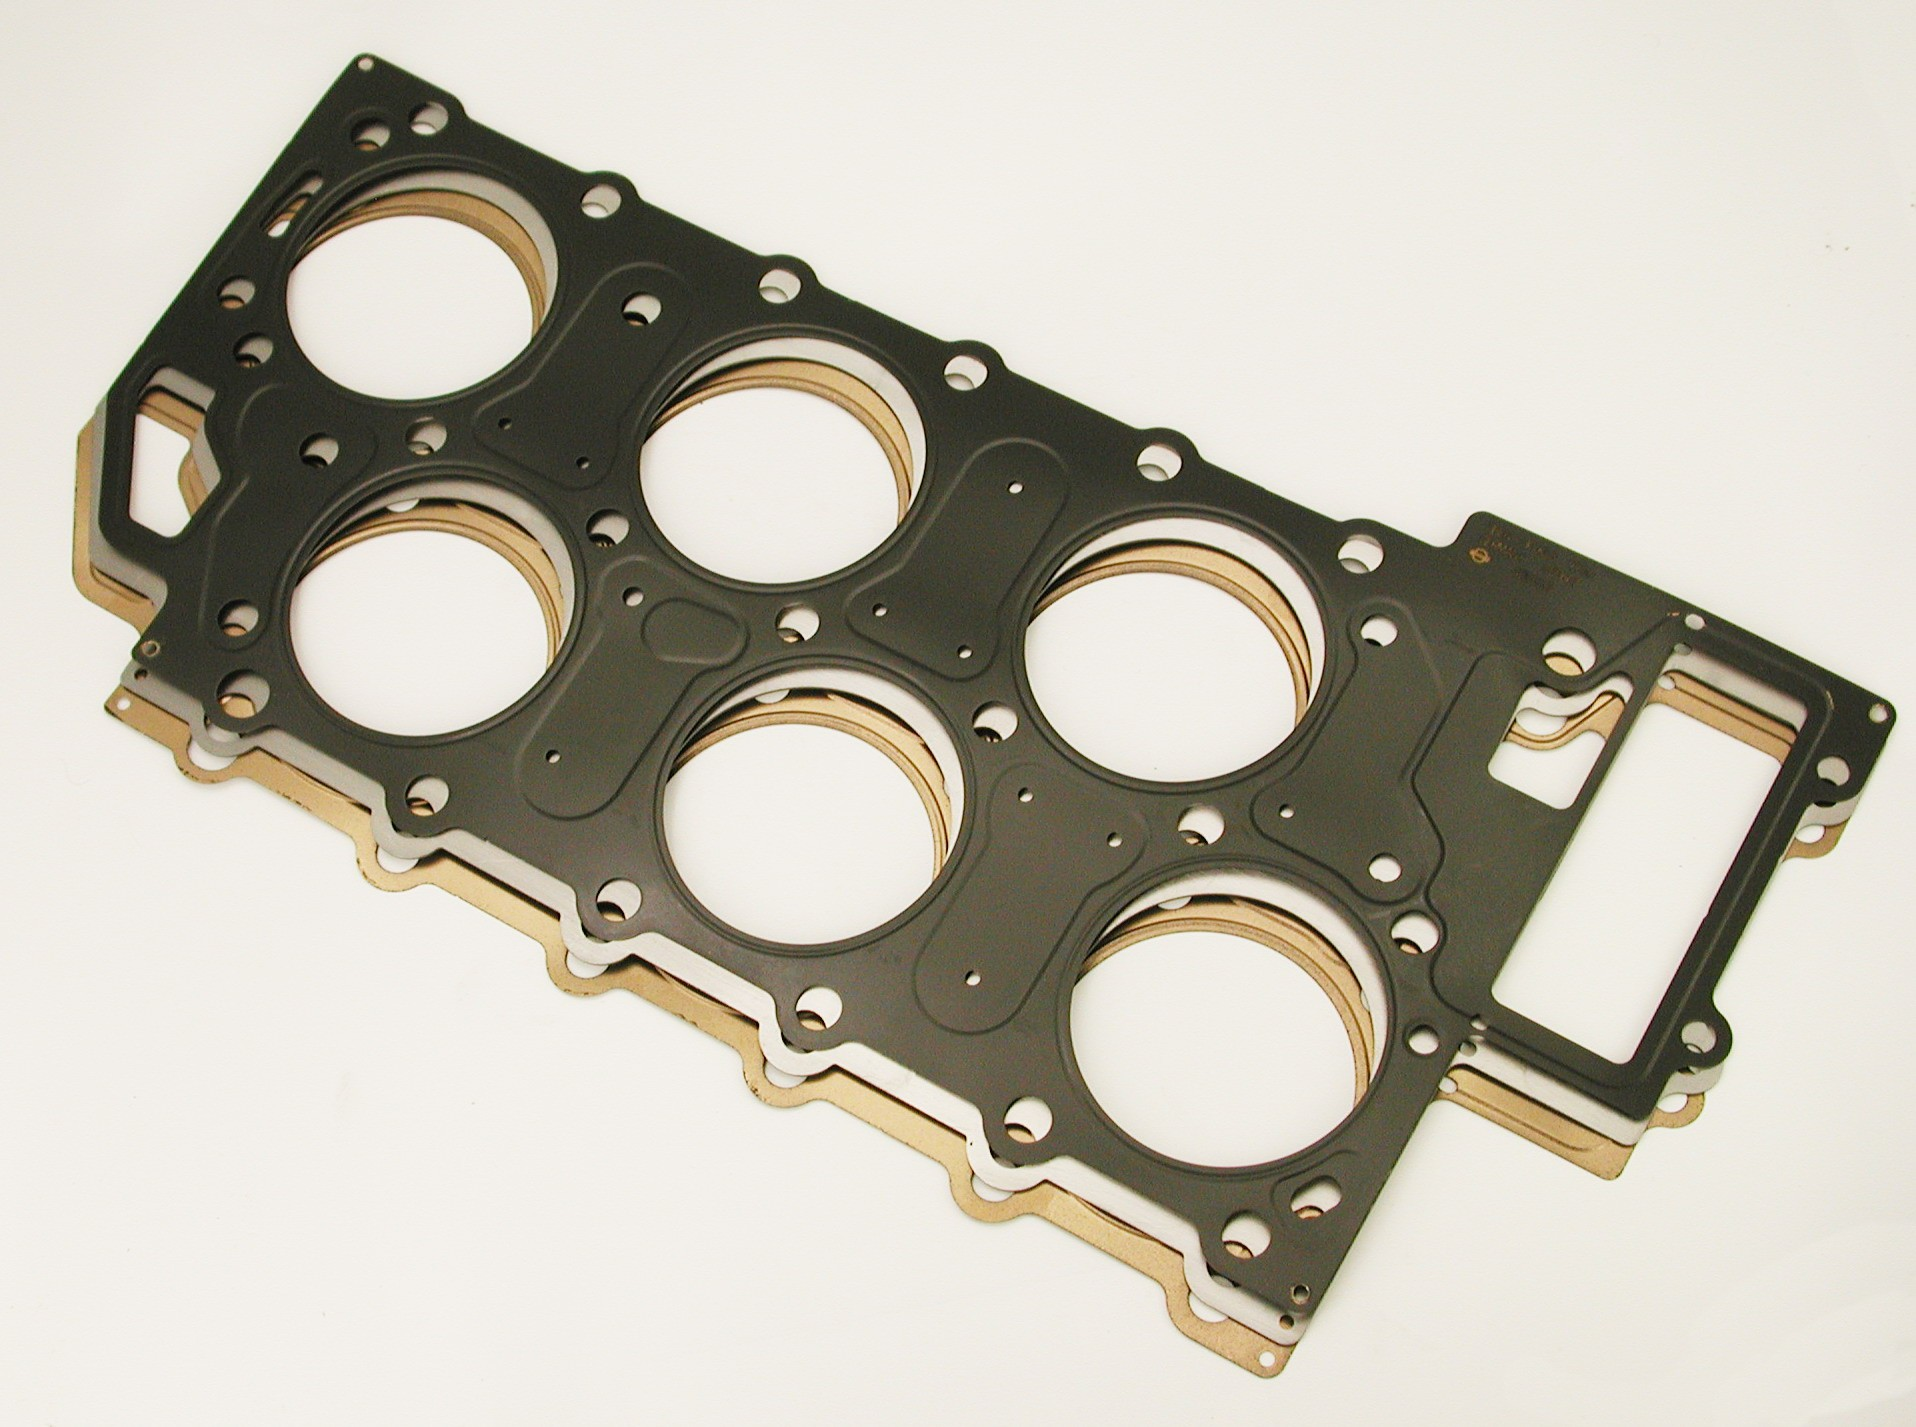 12V VR6 Steel Gasket / Spacer